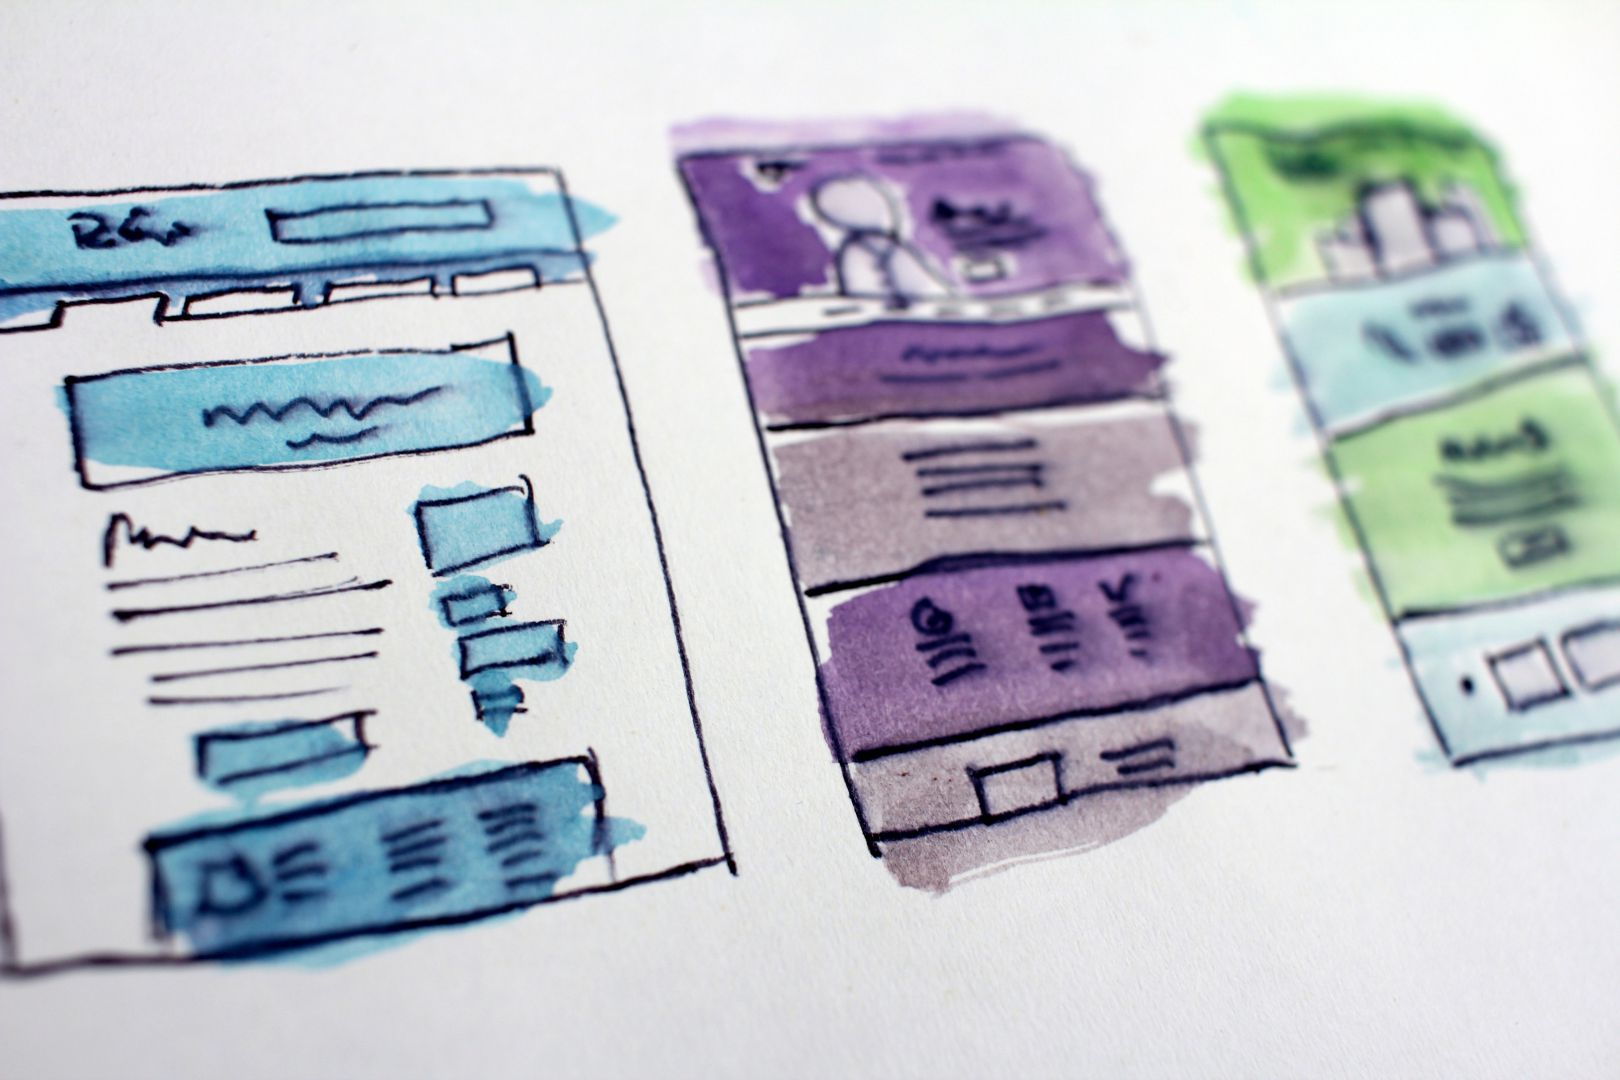 Website layout design concepts